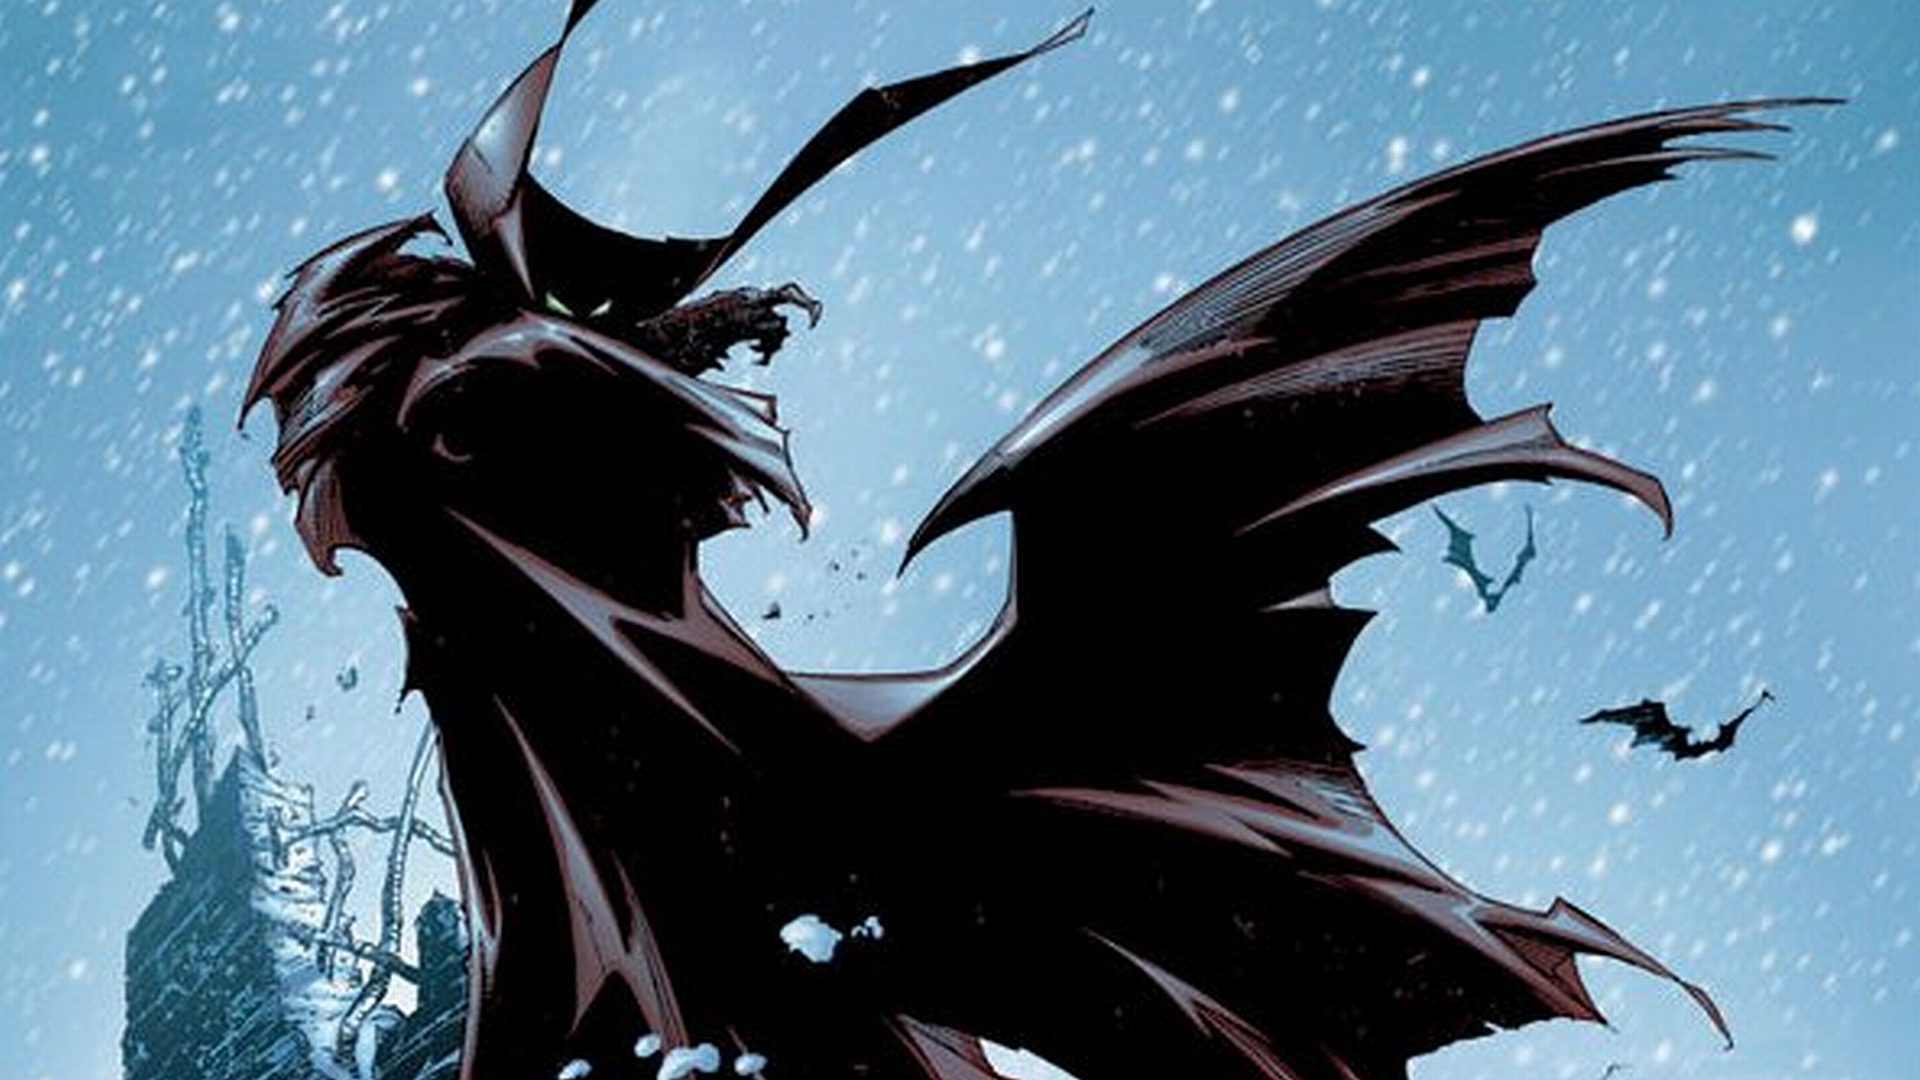 spawn wallpapers 1920x1080 - photo #42